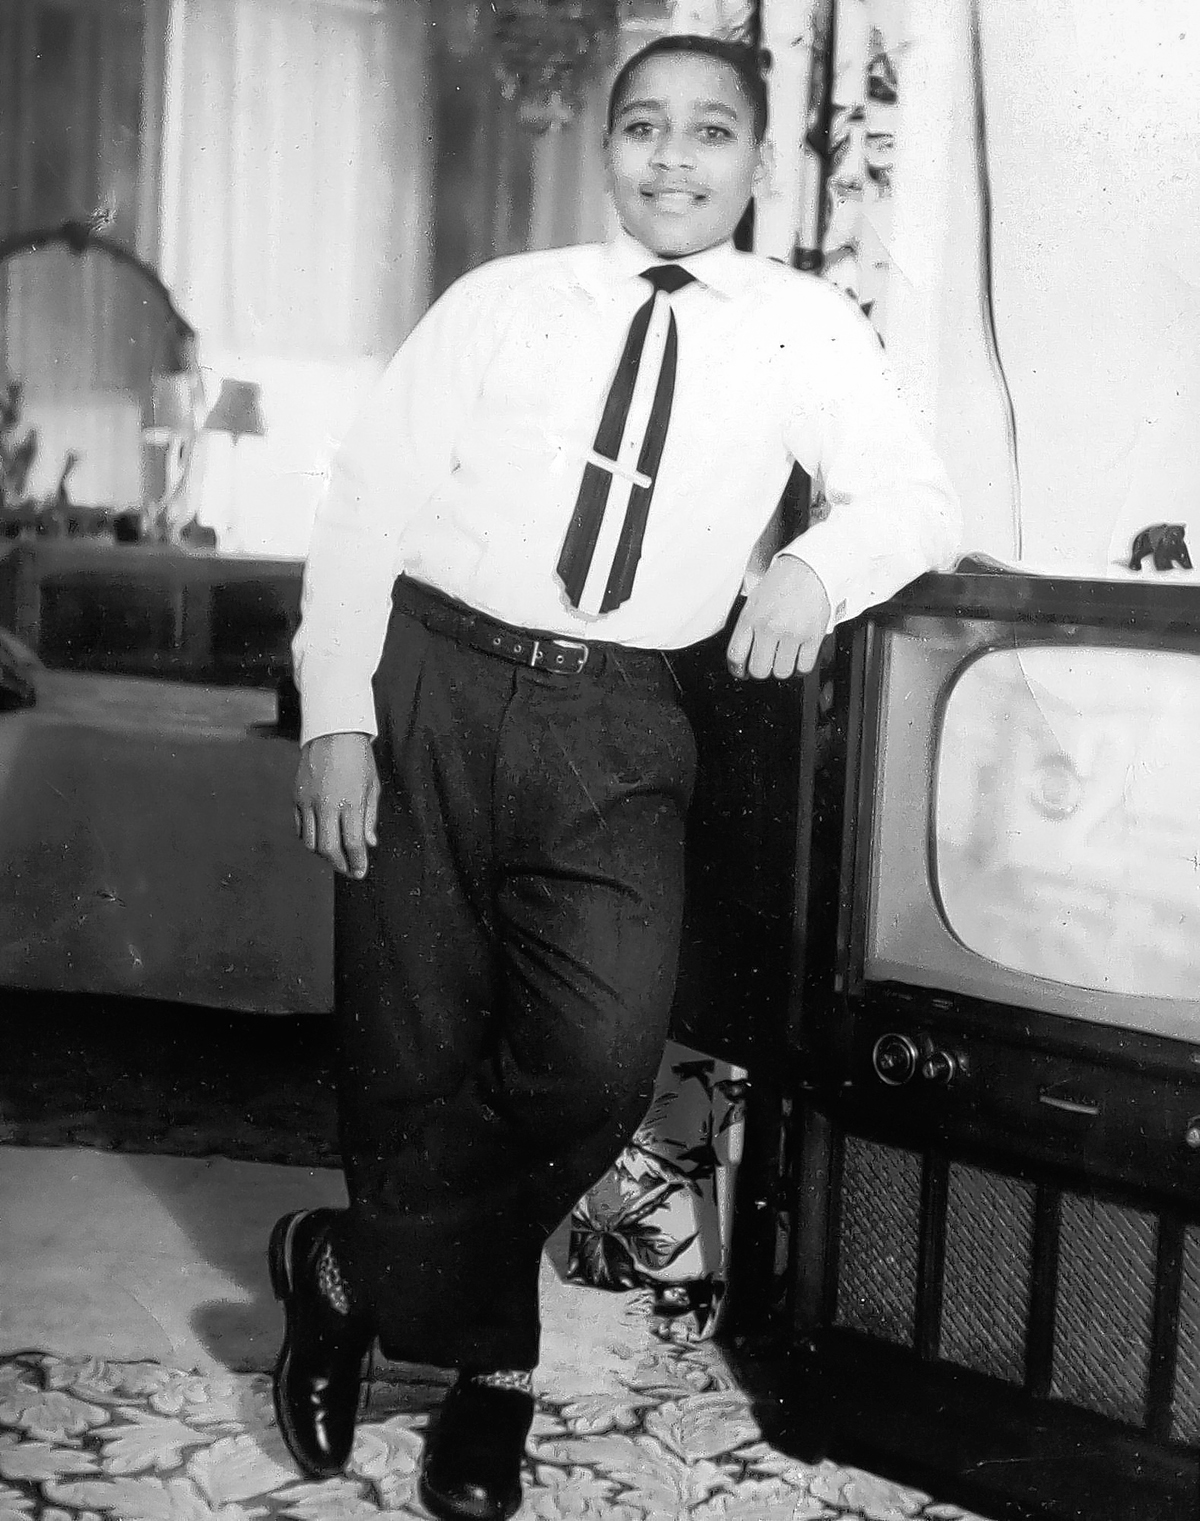 Photo of Emmett Louis Till circa early 1950s